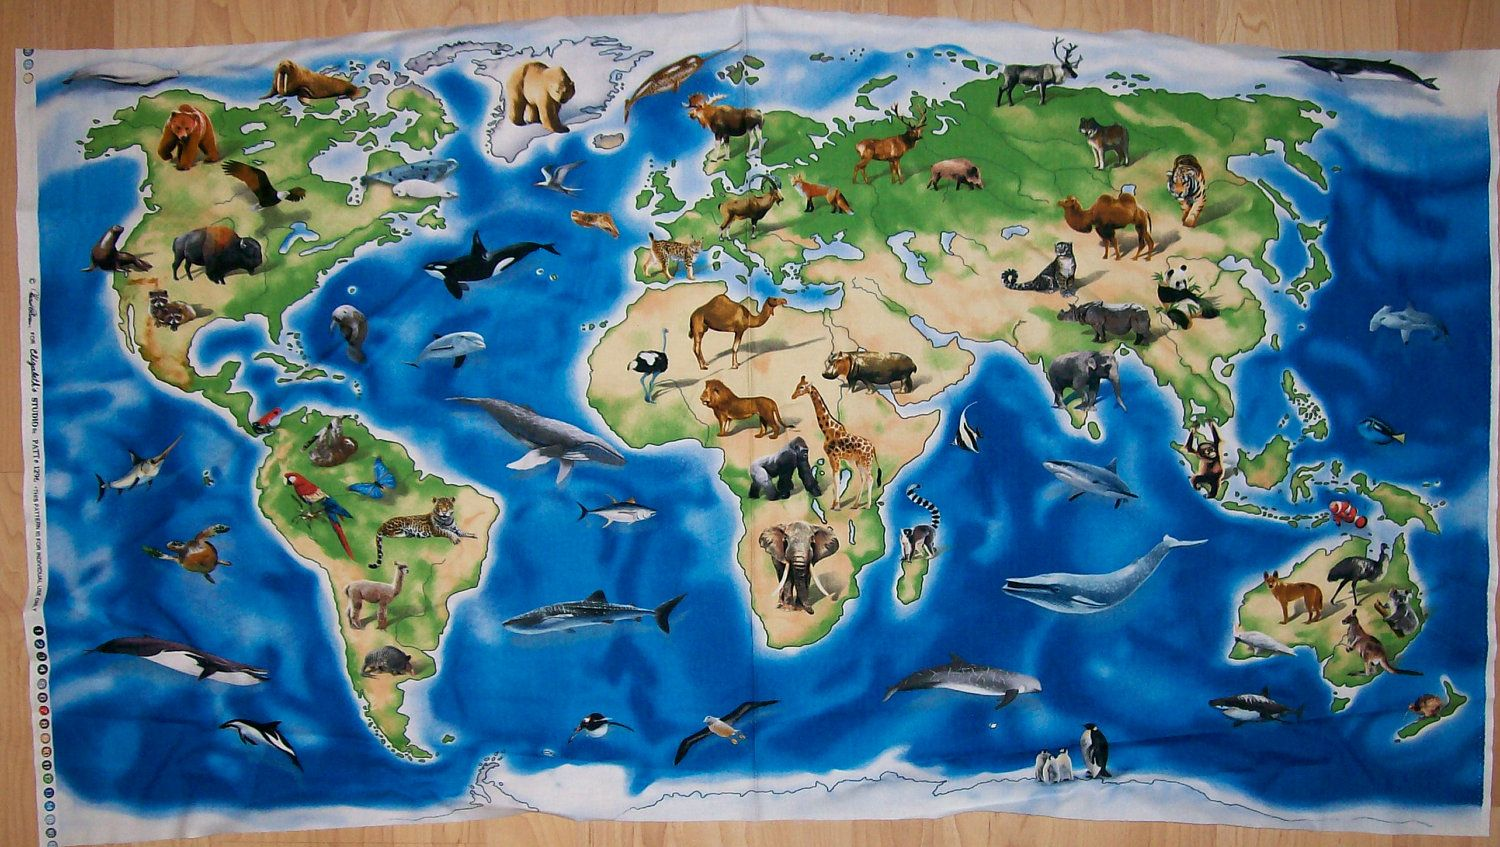 A wonderful world atlas with animals world map fabric panel free us a wonderful world atlas with animals world map fabric panel free us shipping gumiabroncs Image collections